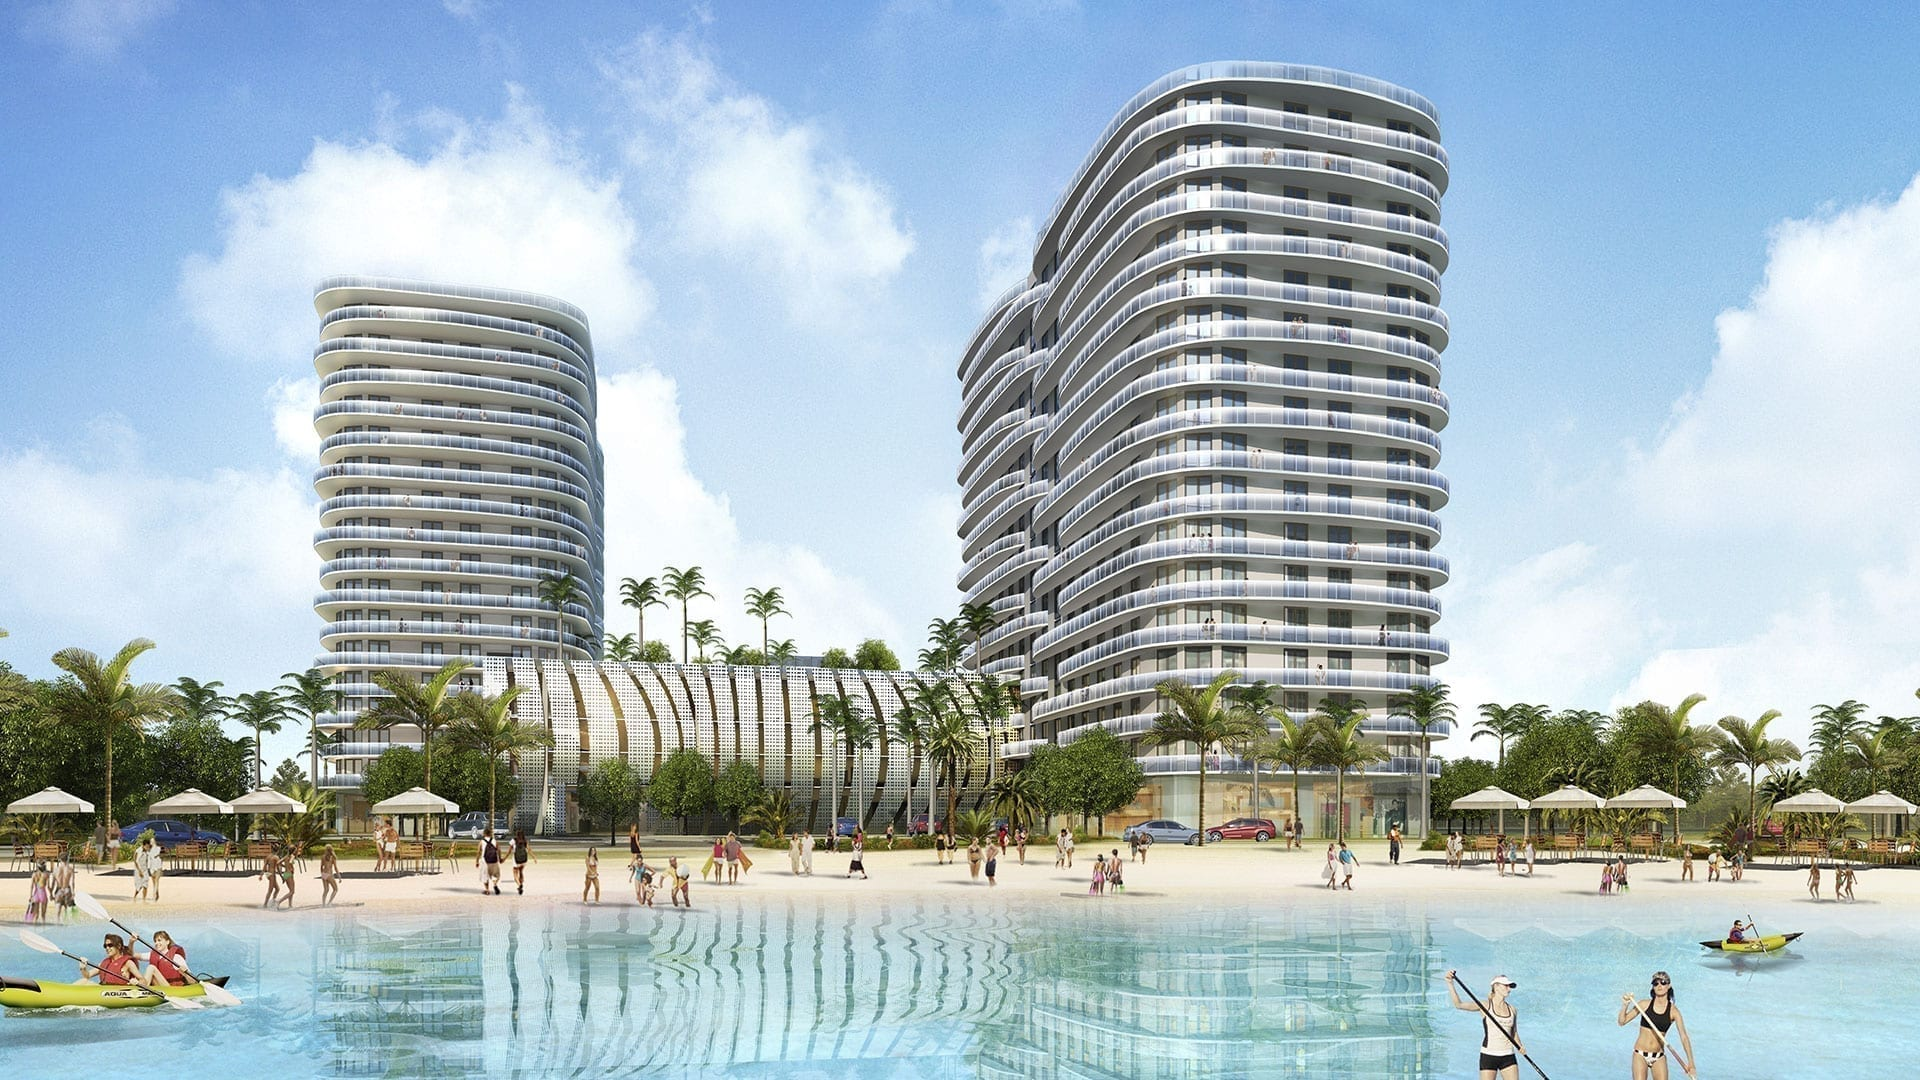 Solé Mia Luxury Residences Miami - Miami Architect by Swedroe Architecture